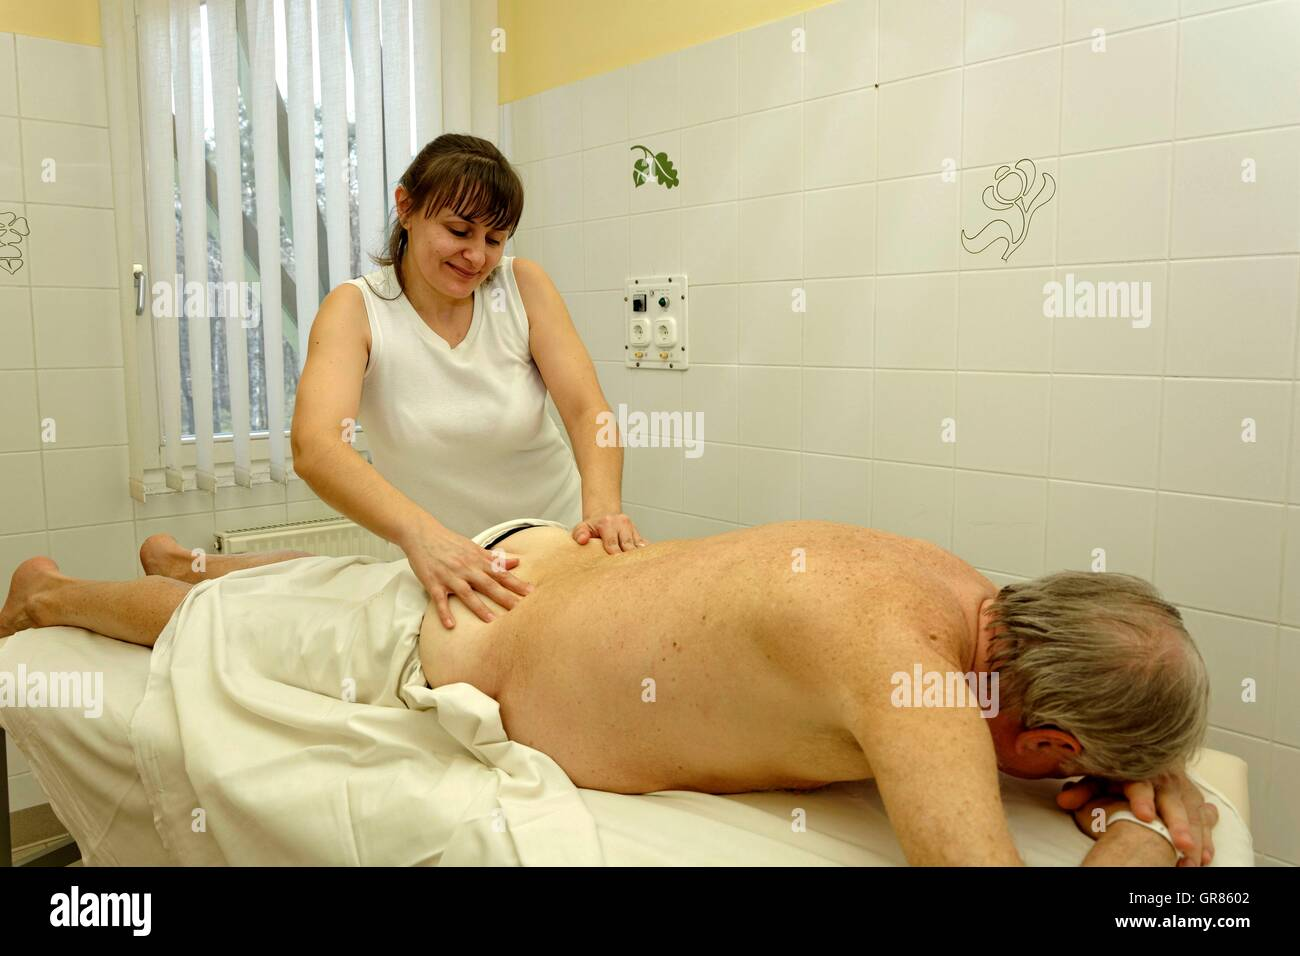 Classic Partial Body Massage By Masseuse At Senior Back In The Spa Cegled - Stock Image